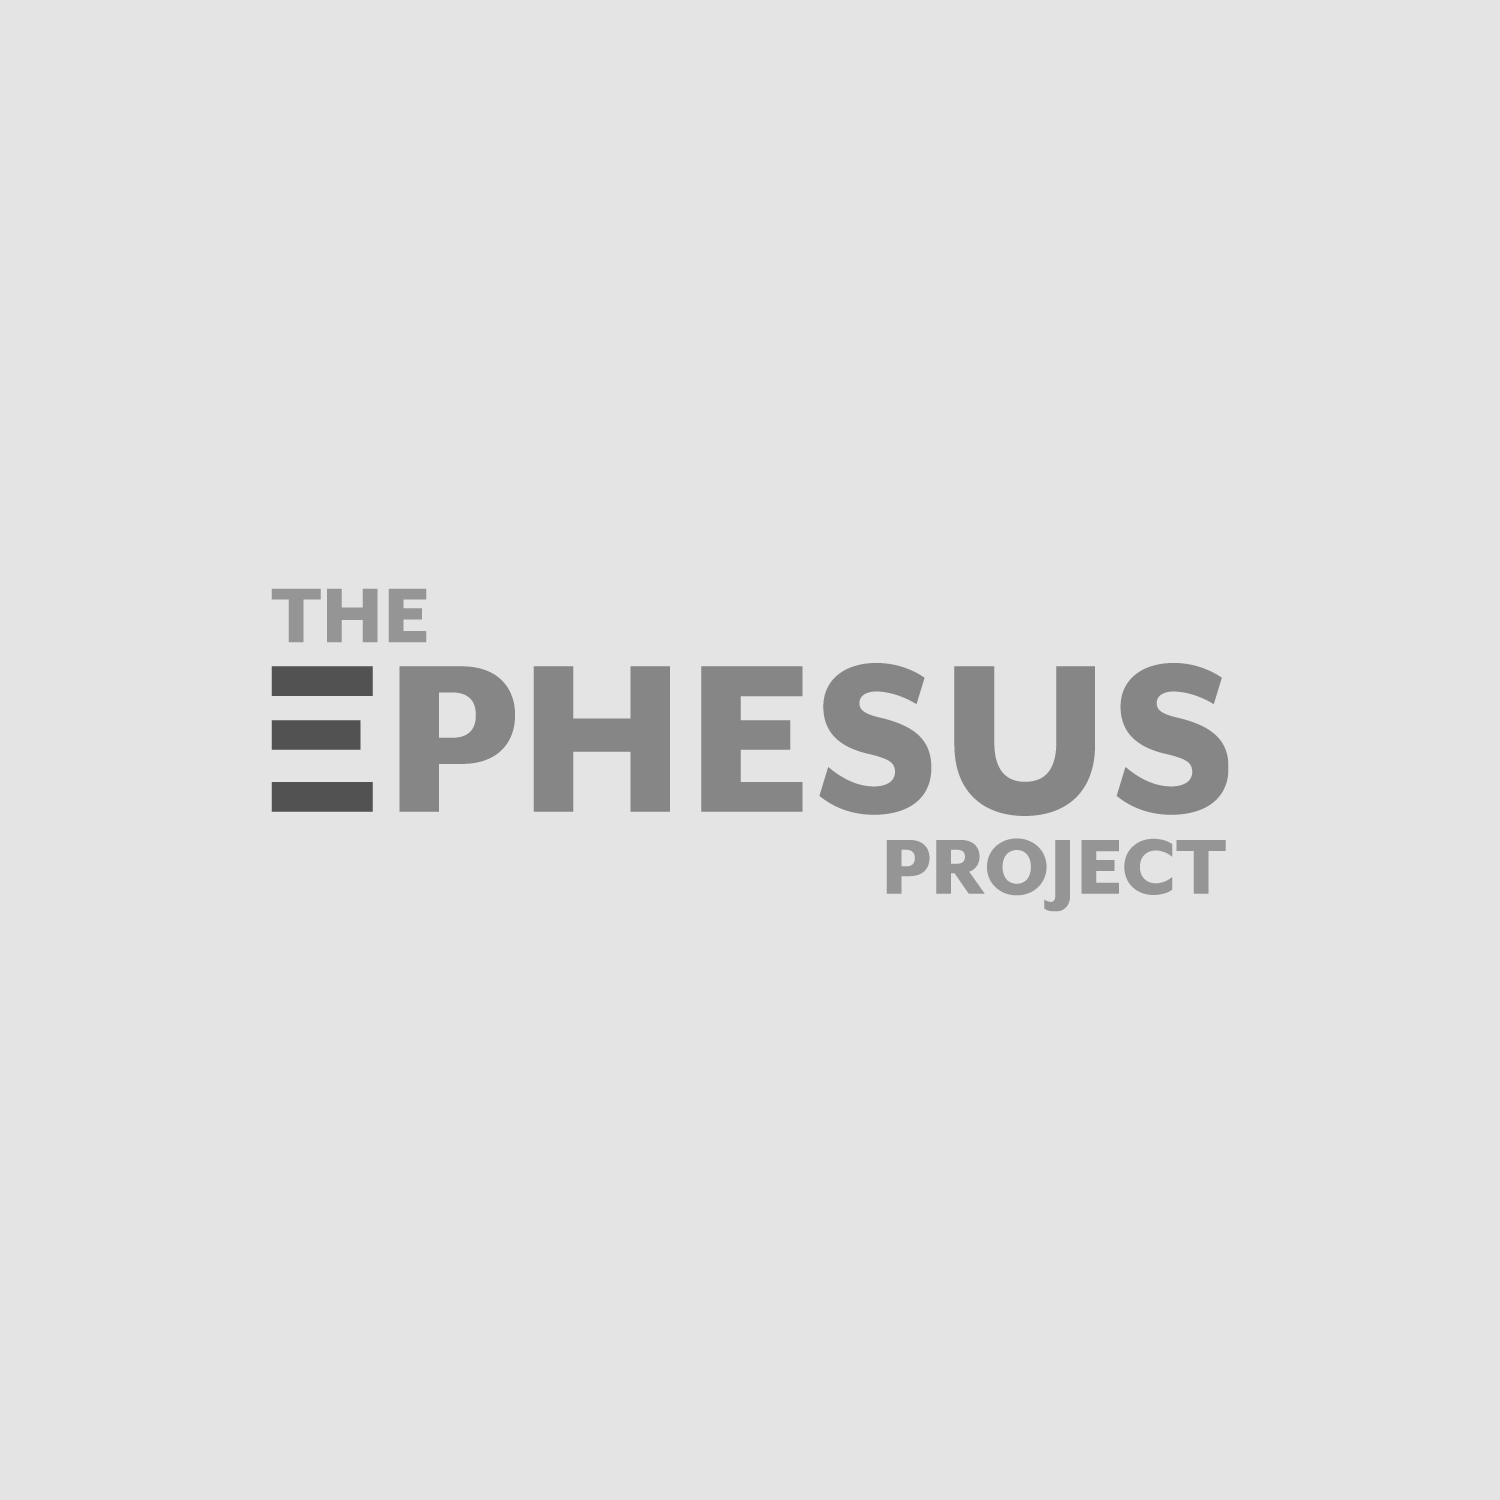 Simeon-Goa_Victoria-Canada_Graphic-Design_Illustration_Logos_The-Ephesus-Project.jpg